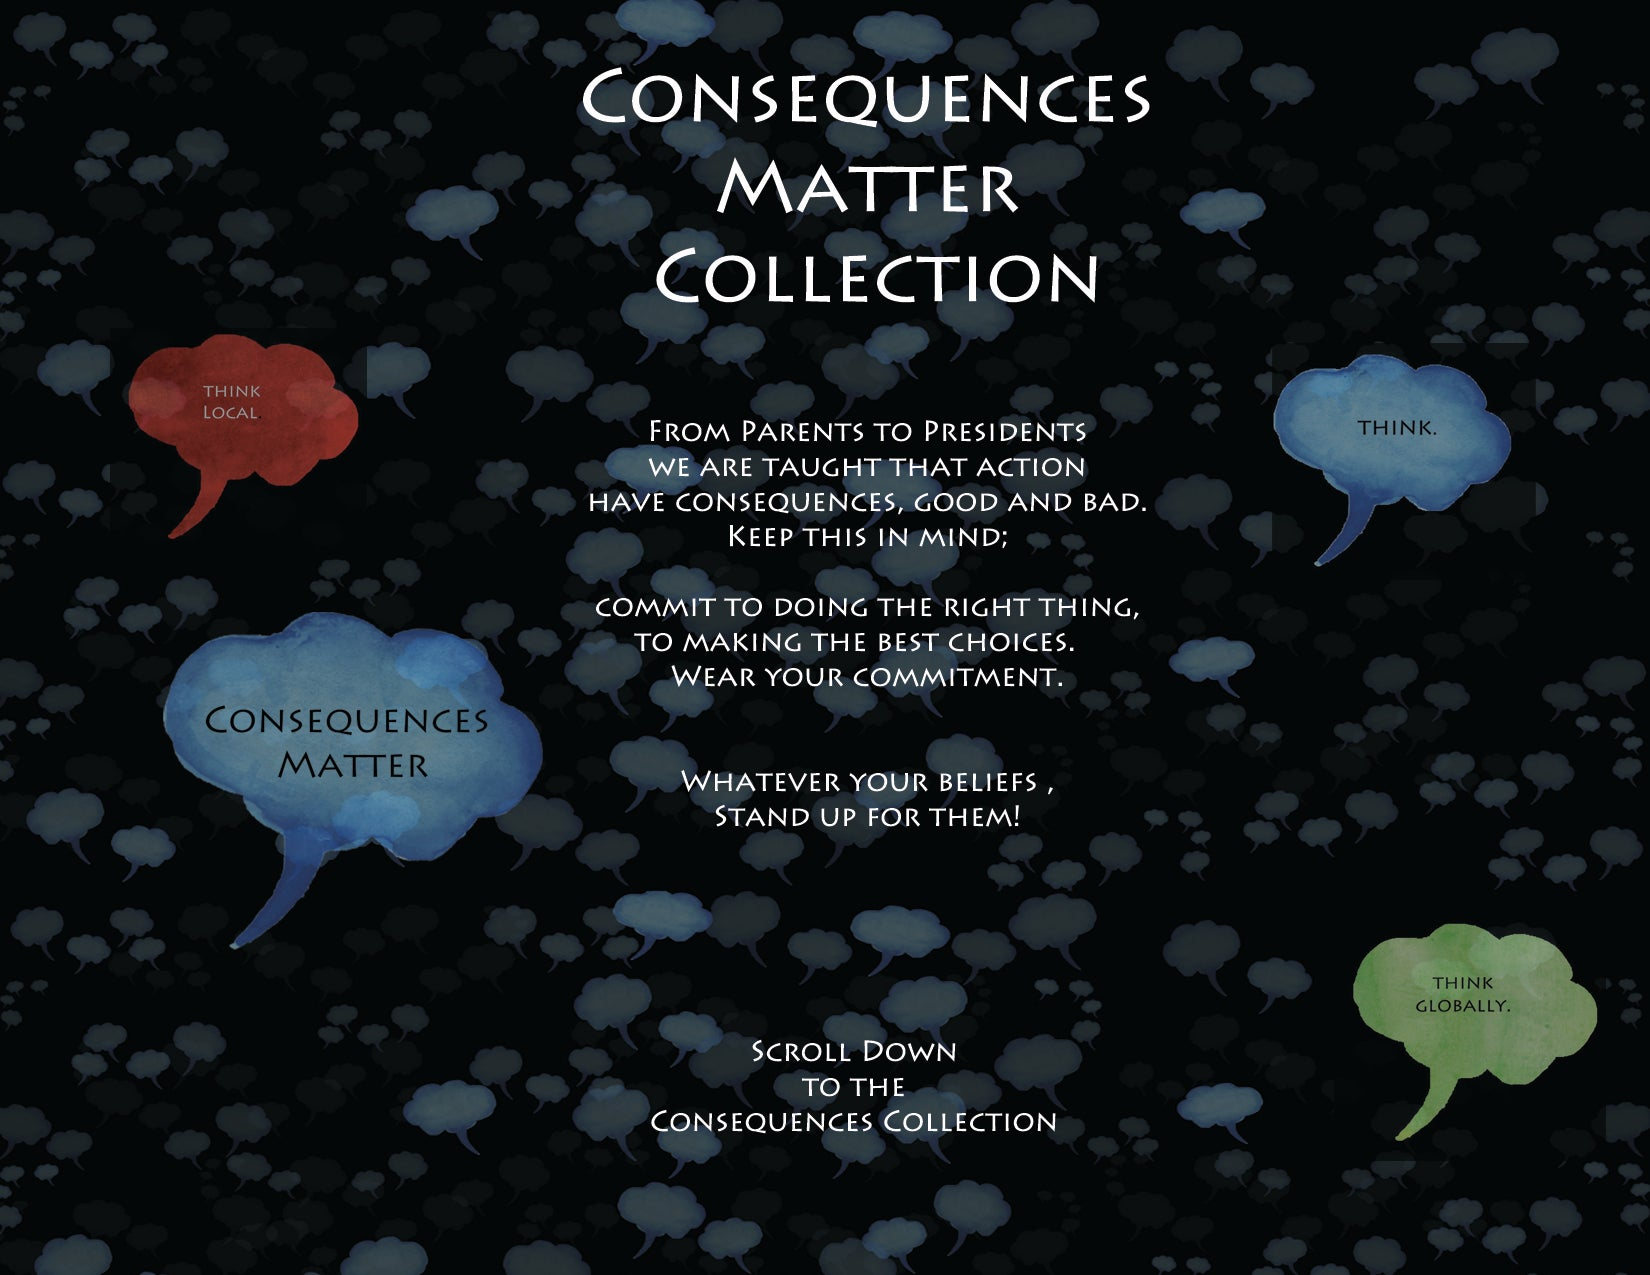 The Consequences Collection